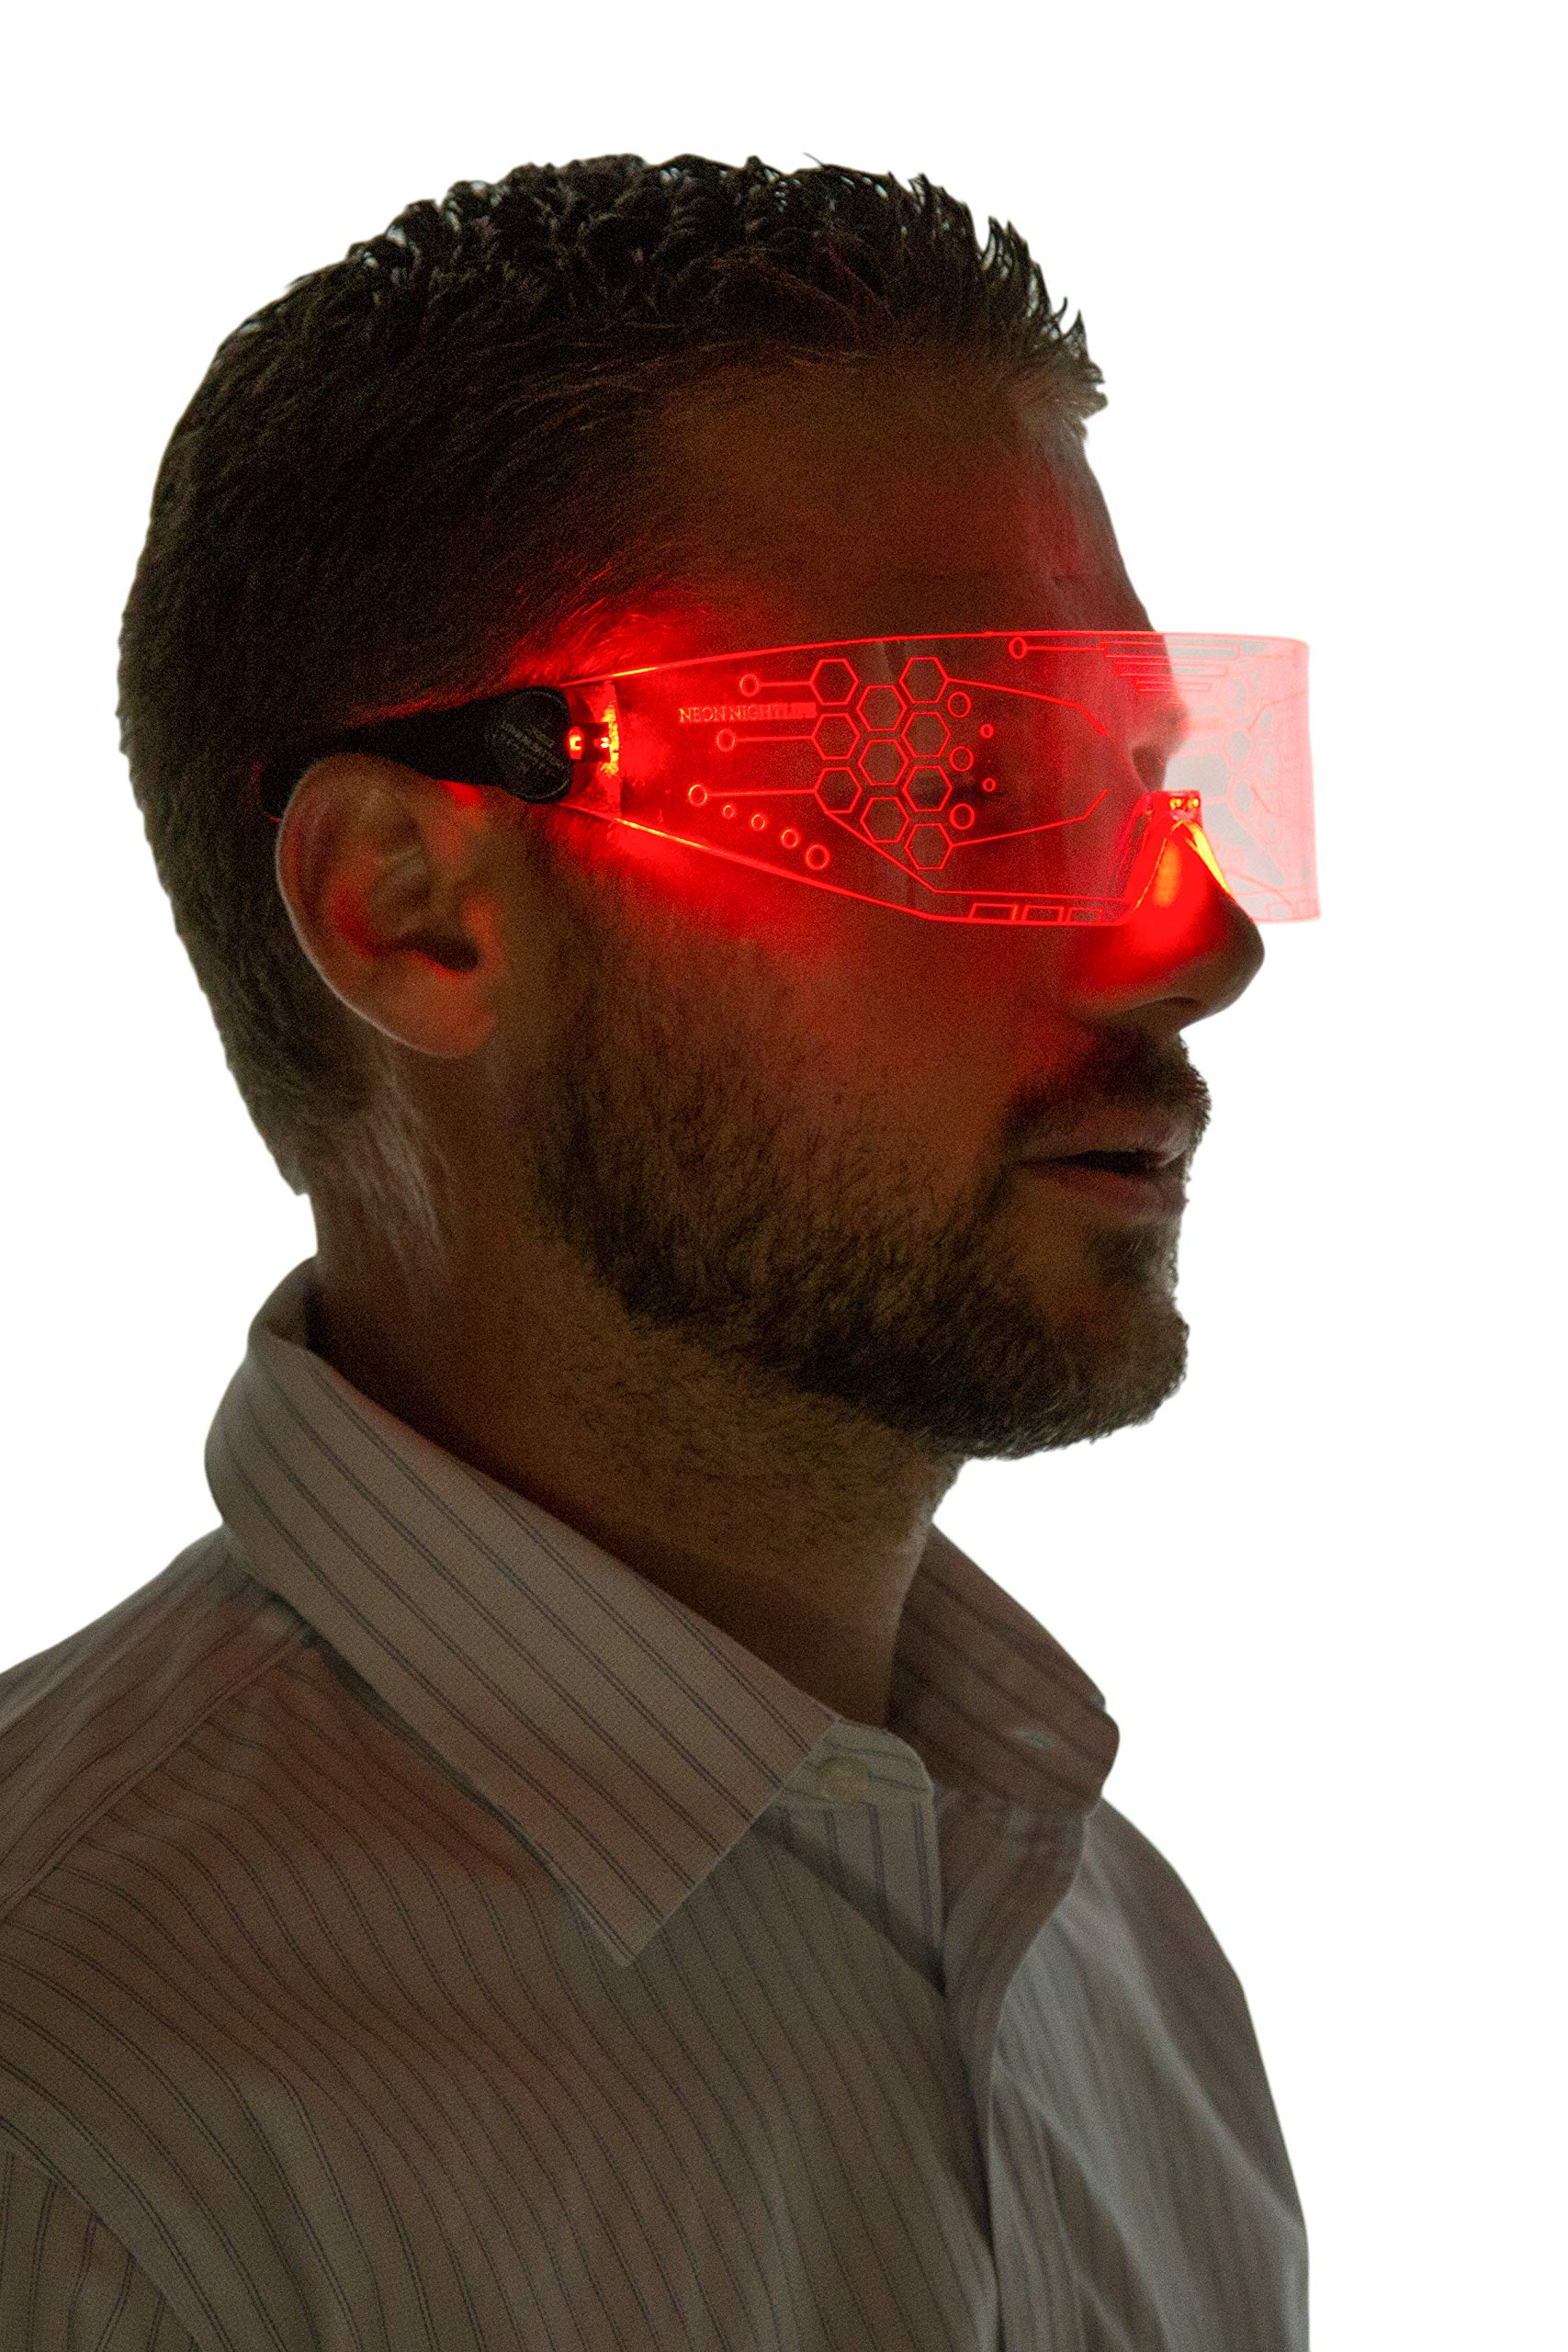 Neon Nightlife LED Light Up Glasses, Single Lens Tron Style, Red